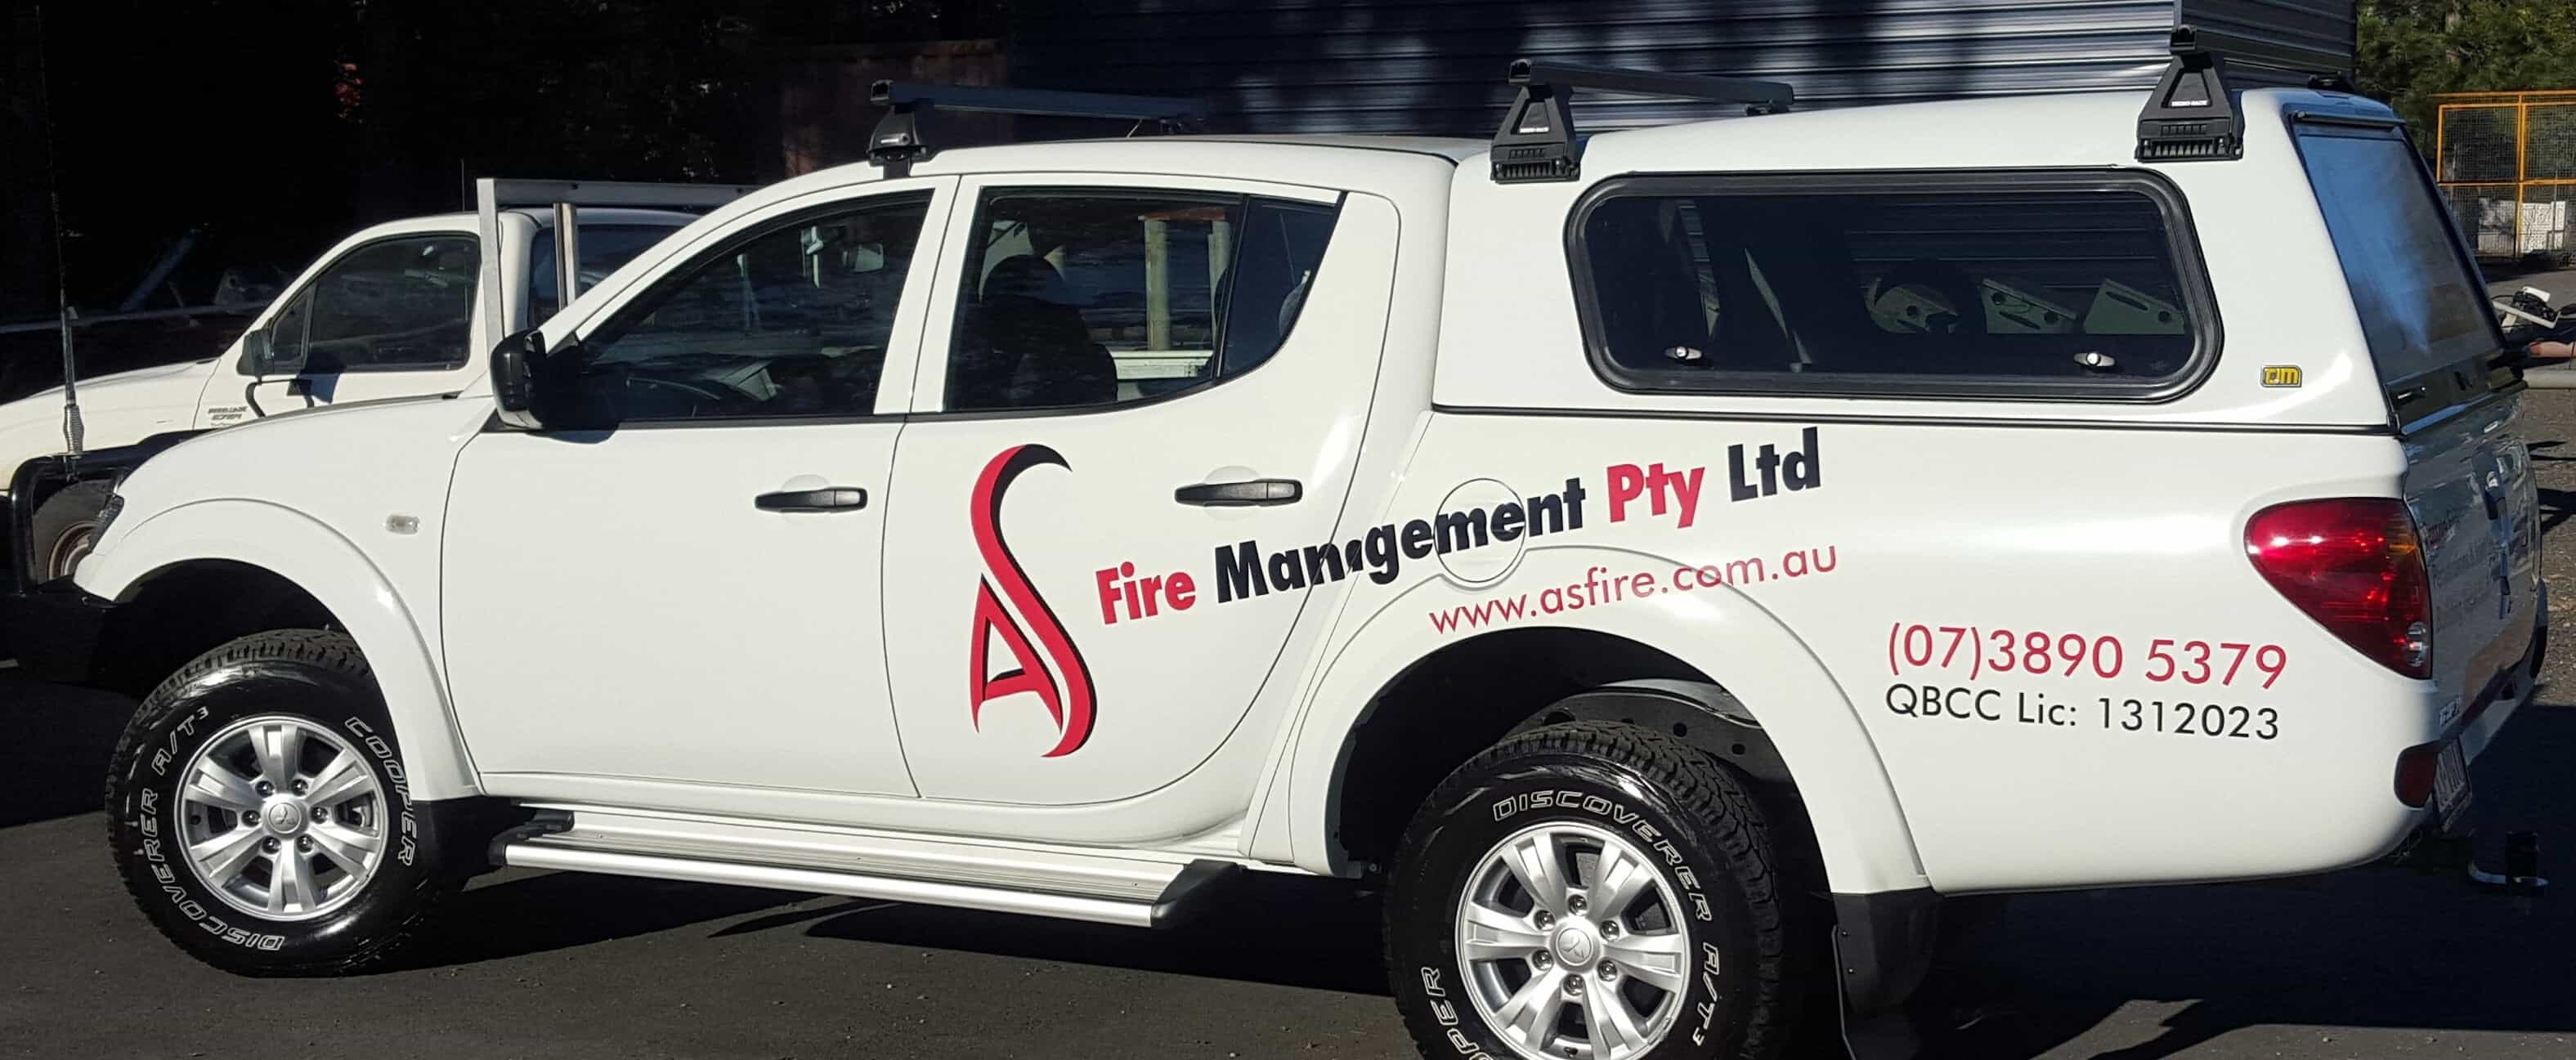 Fire Protection Services Noosa